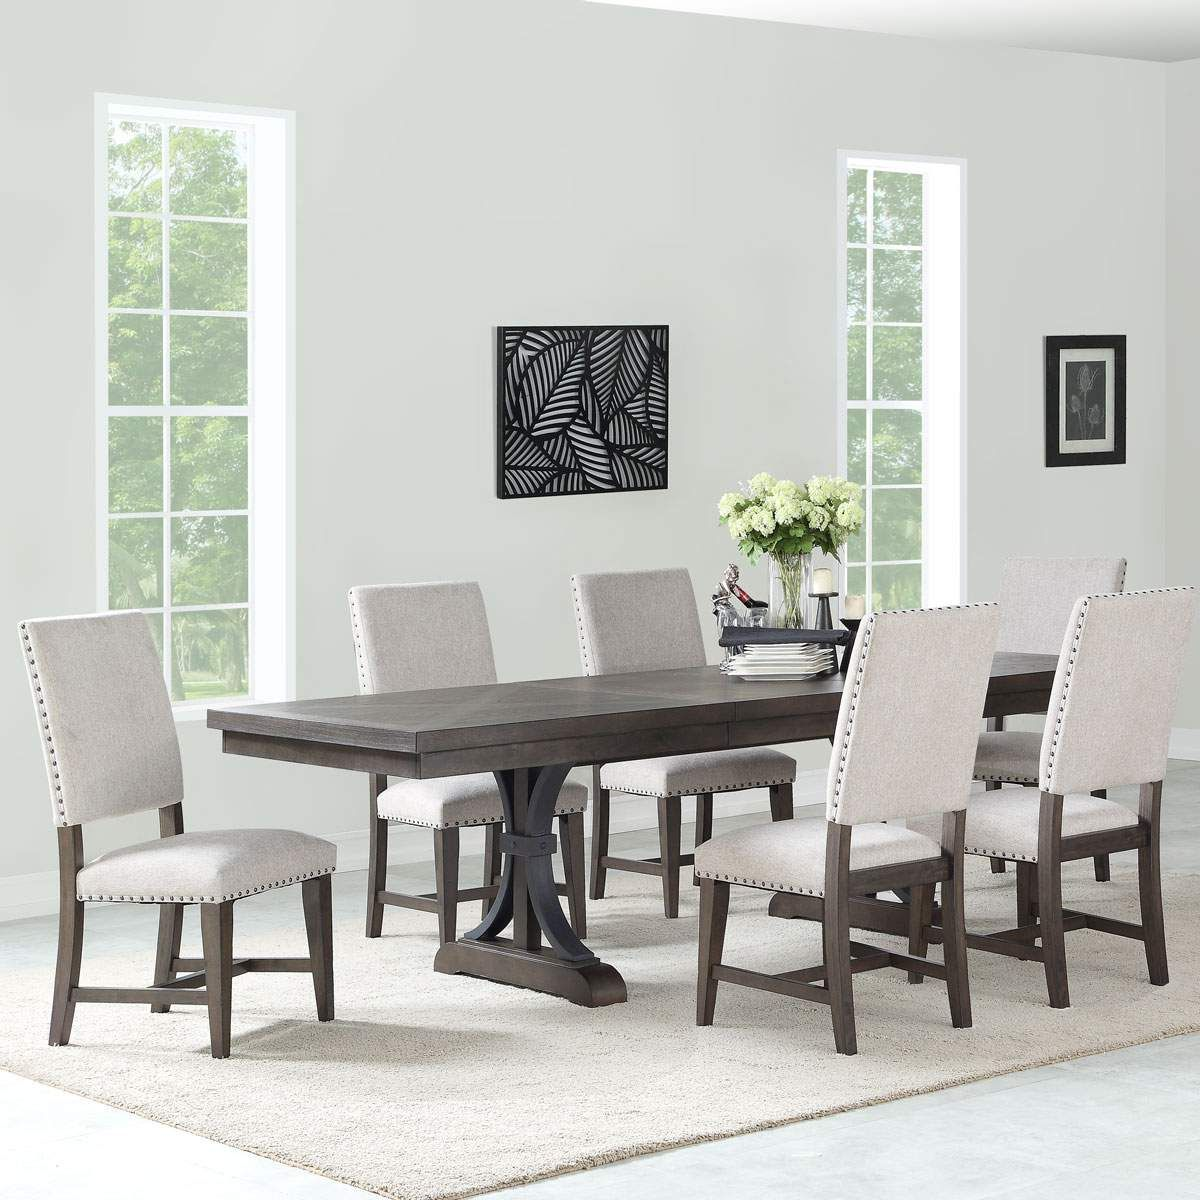 Espresso Stained Table Set W 6 Fabric Chairs Jerome S In 2020